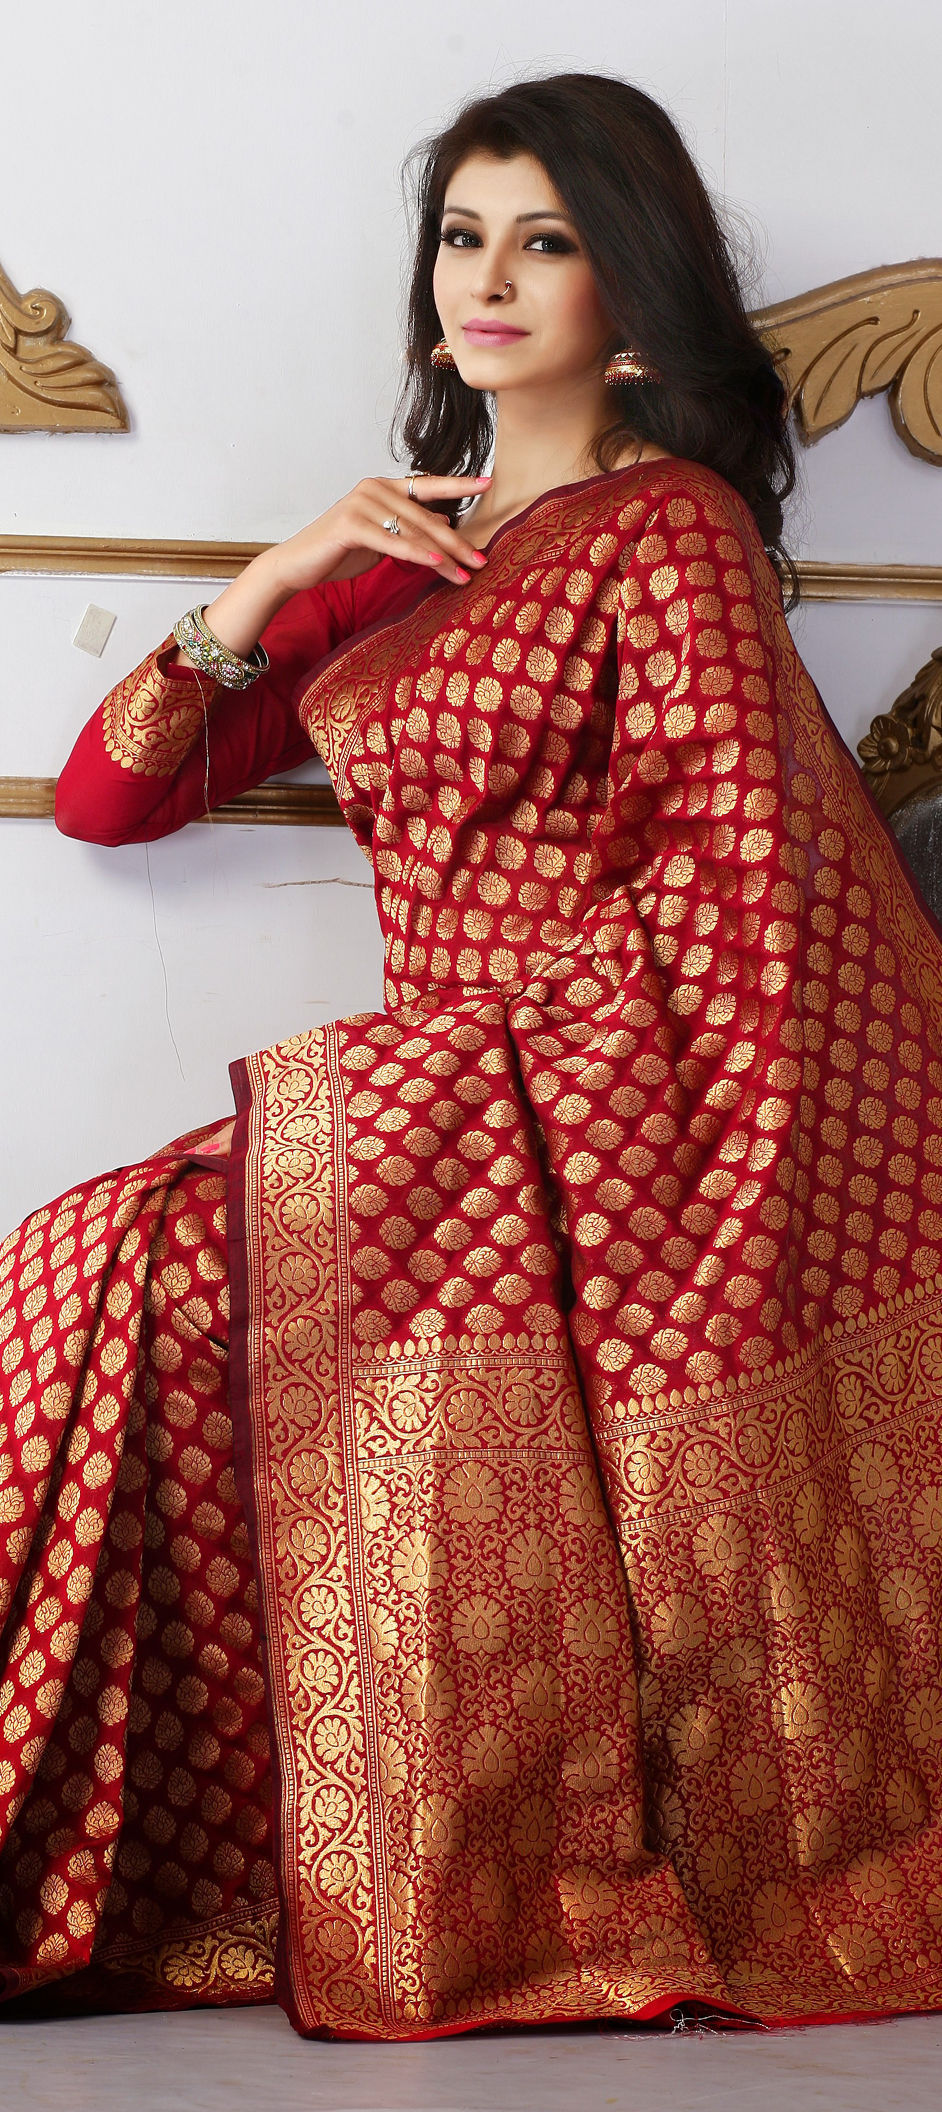 136856: Red and Maroon color family Party Wear Sarees with matching ...